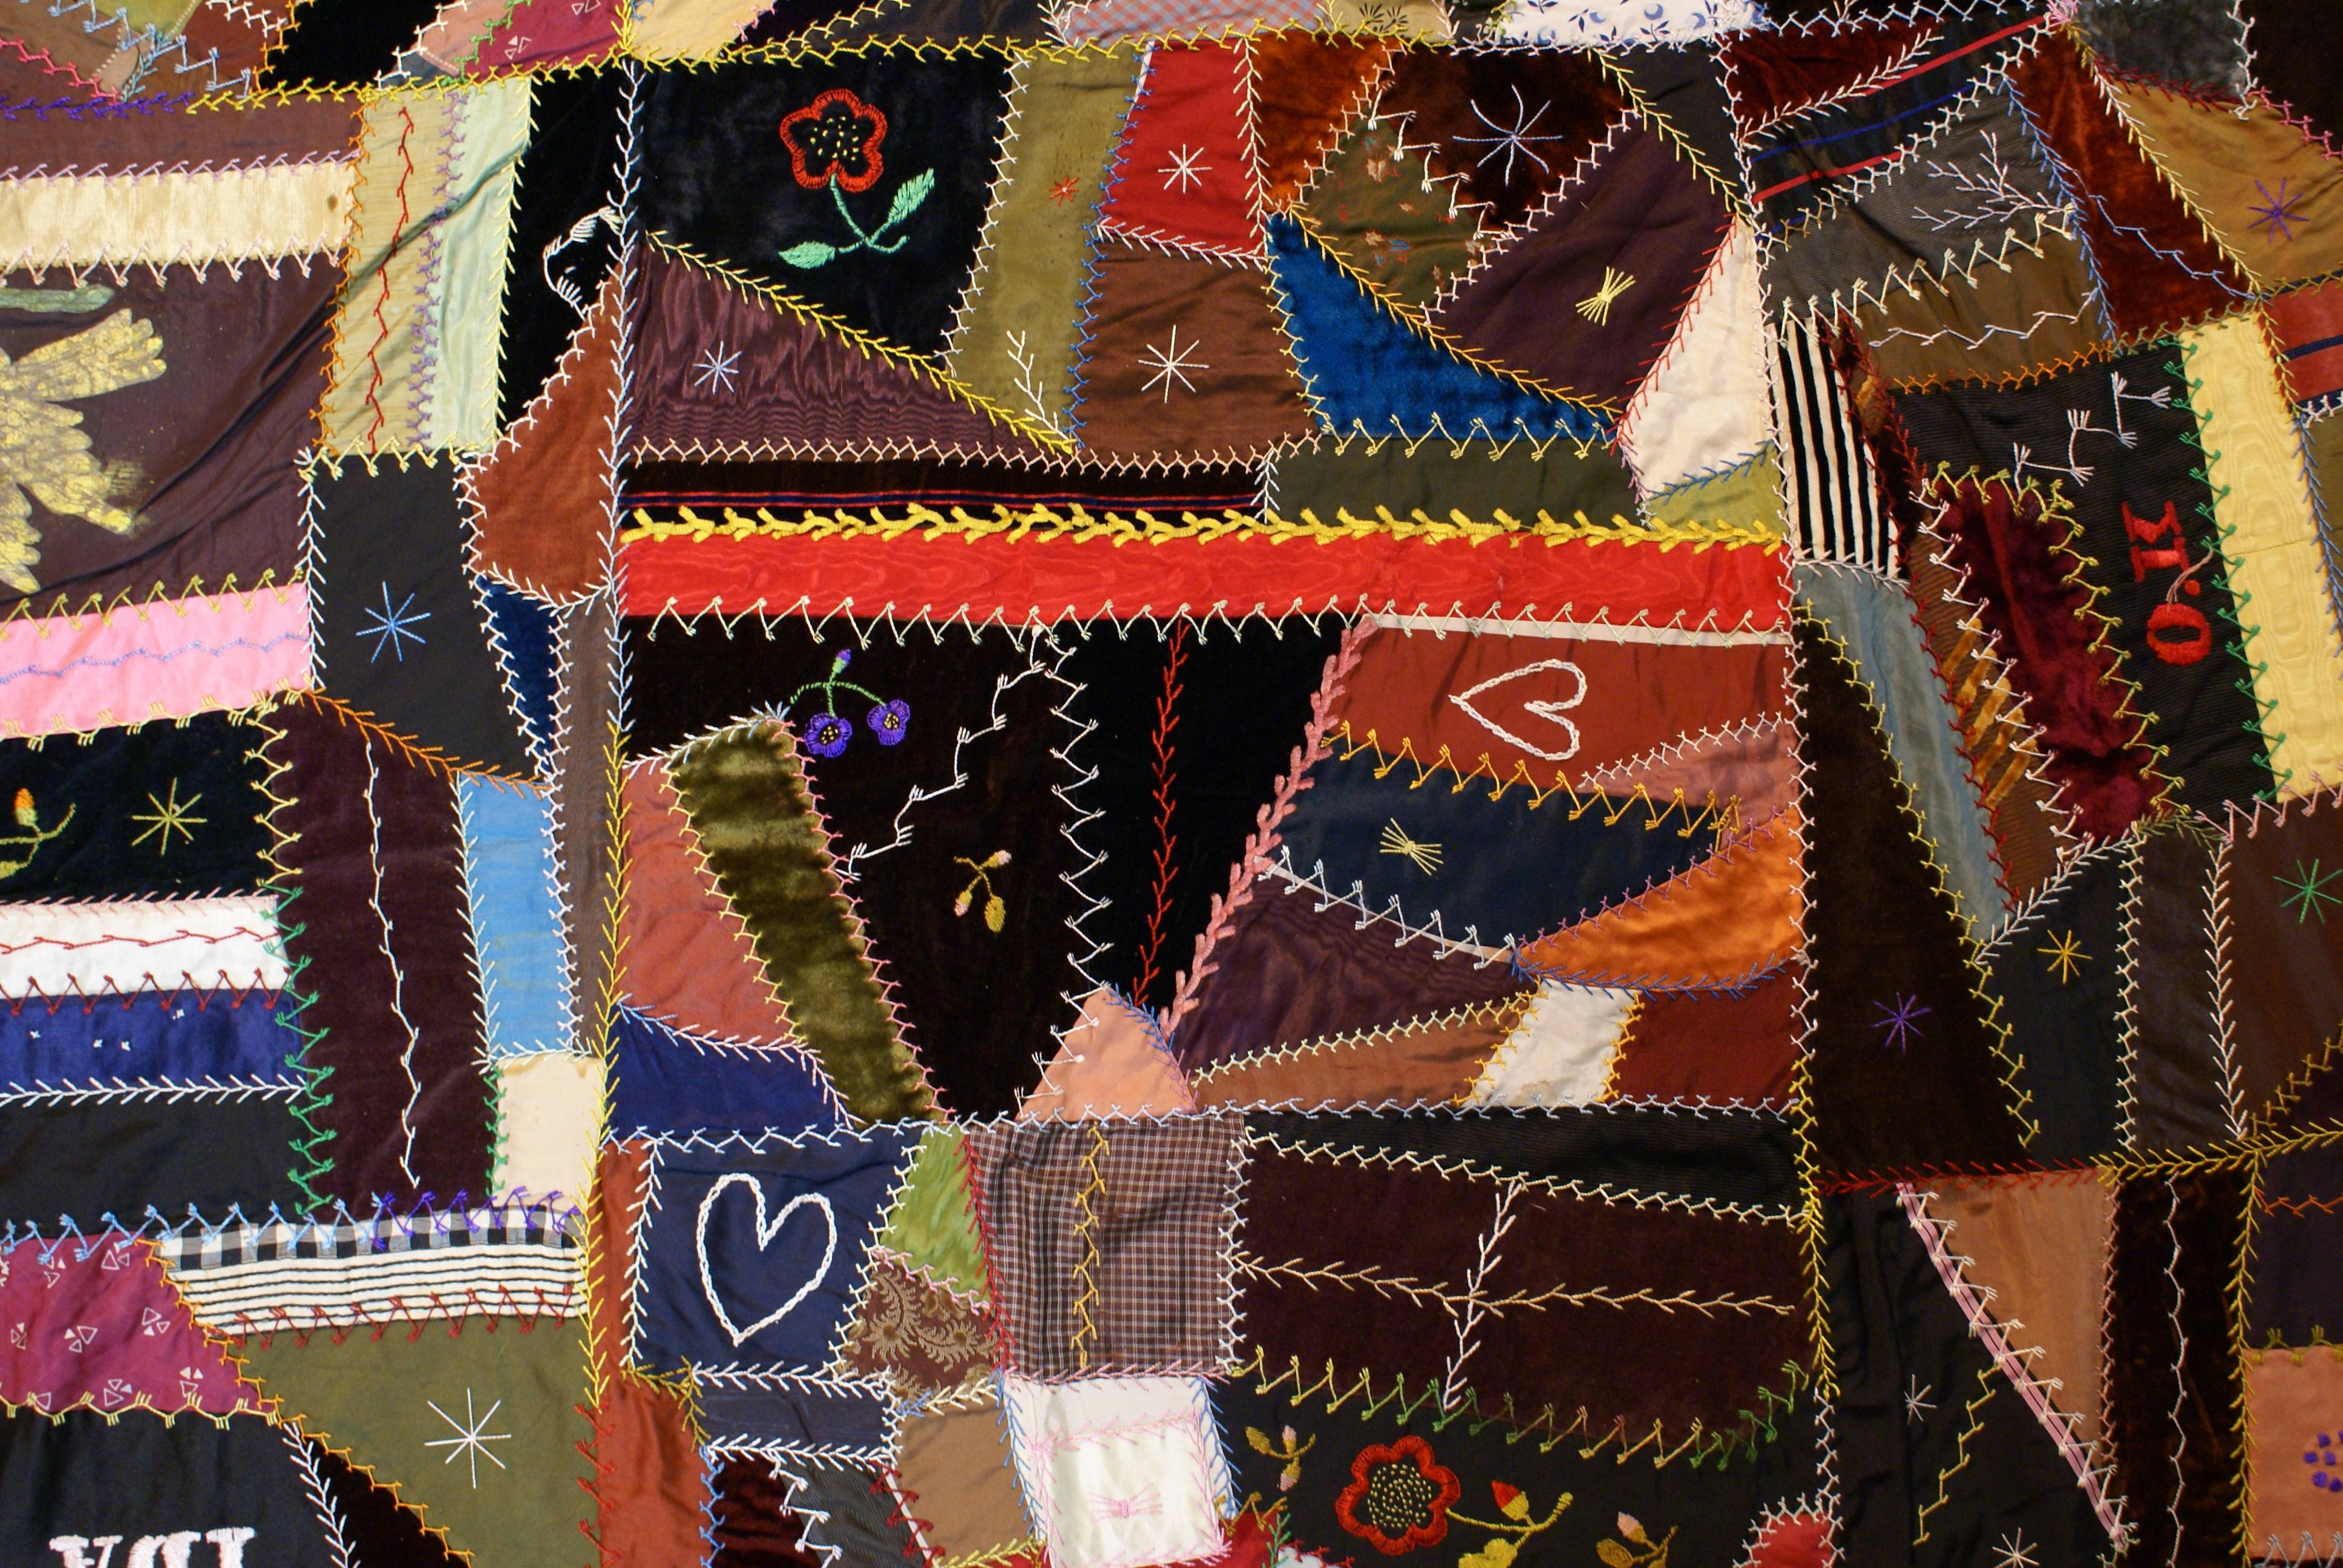 Local quilters are invited to join a new Quilters Group that is forming at the Des Plaines History Center from 10 a.m.-noon on Saturday, Aug. 9.